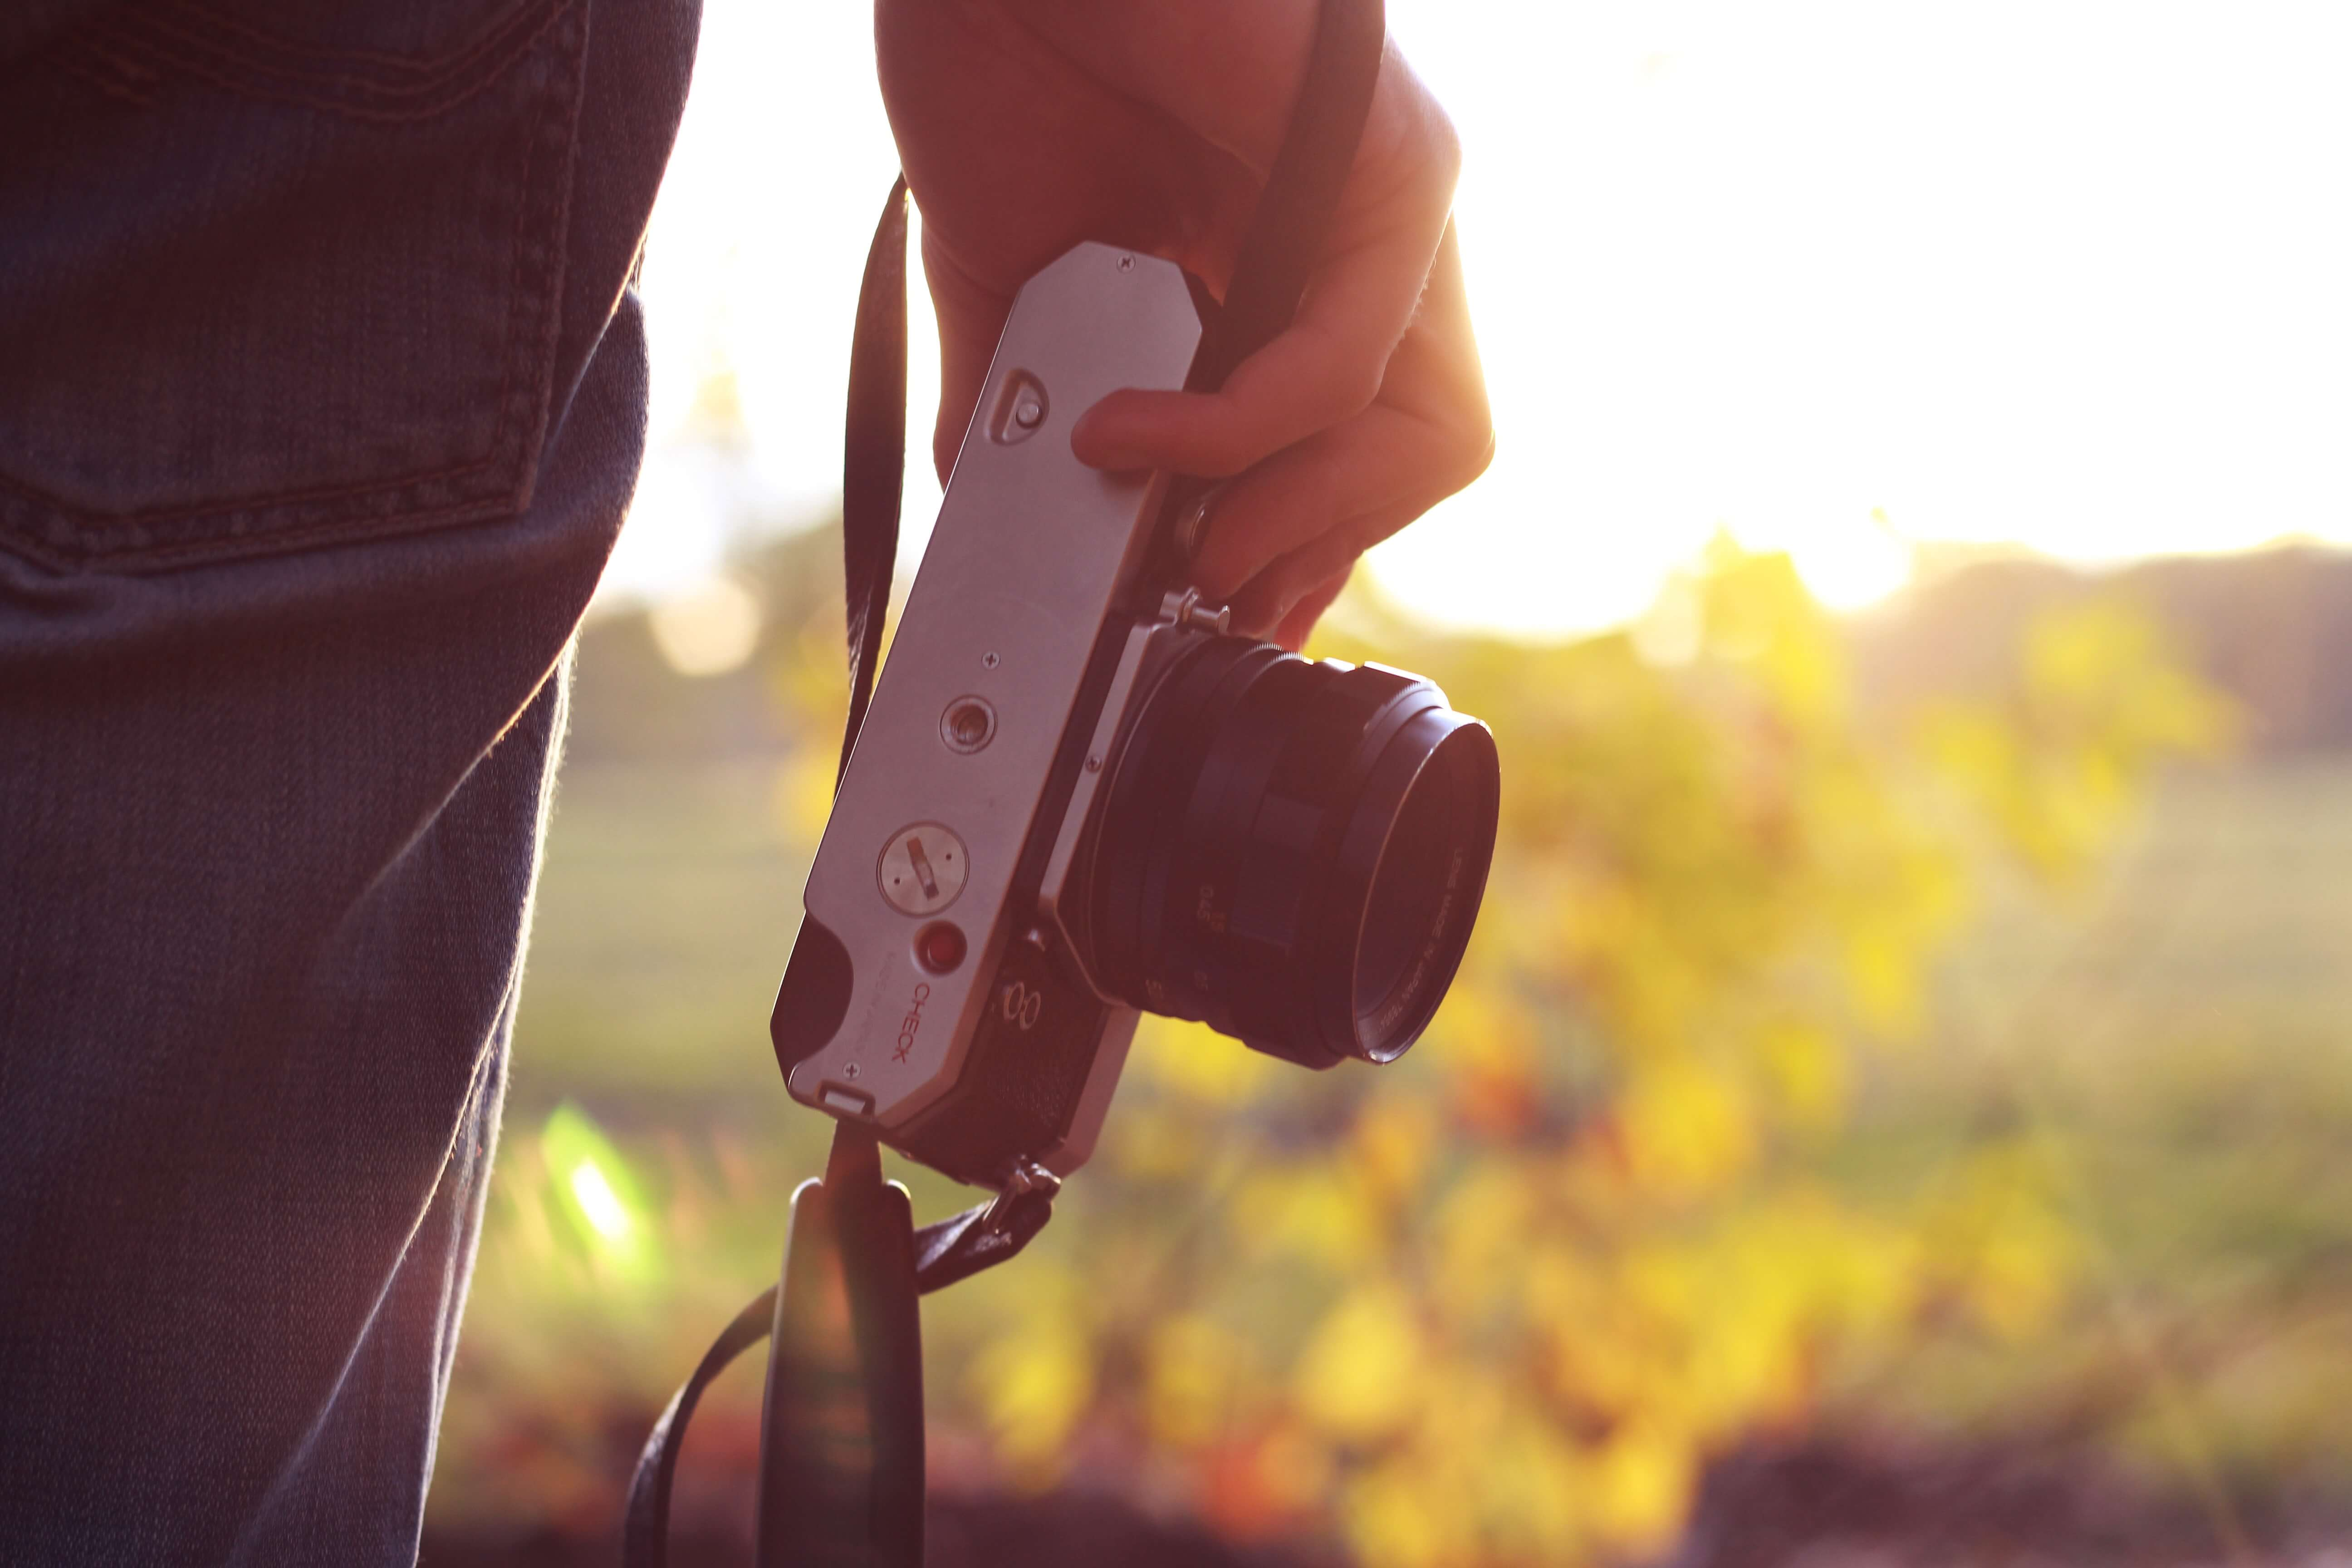 5 reasons why peer-generated content breeds trust